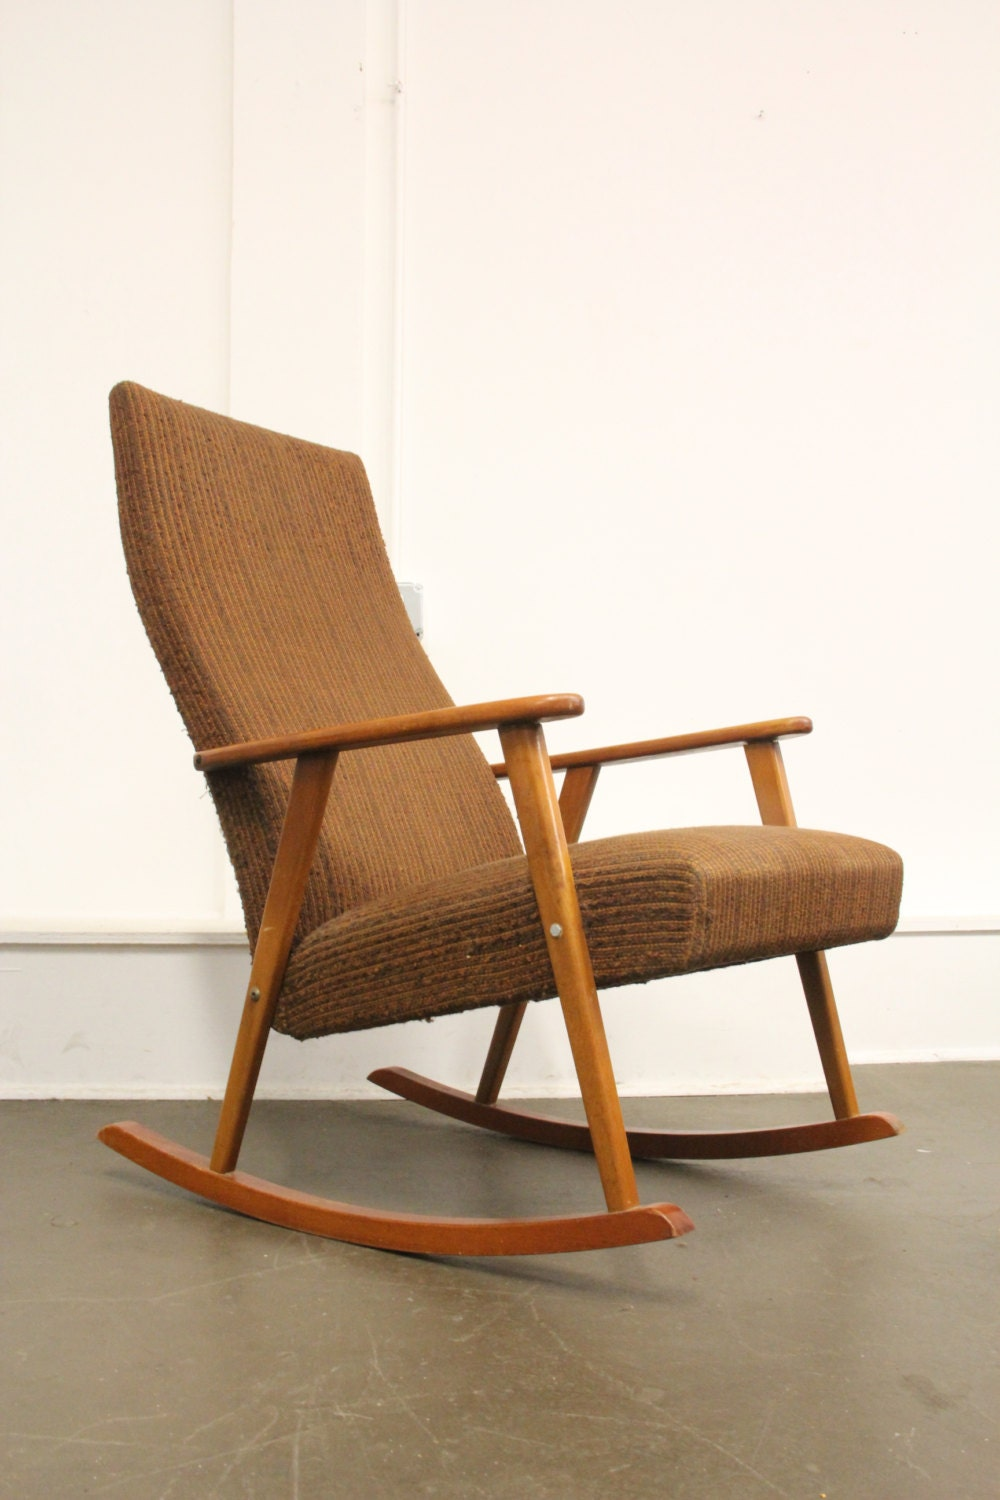 soldmid century modern johanson vintage rocking chair. Black Bedroom Furniture Sets. Home Design Ideas